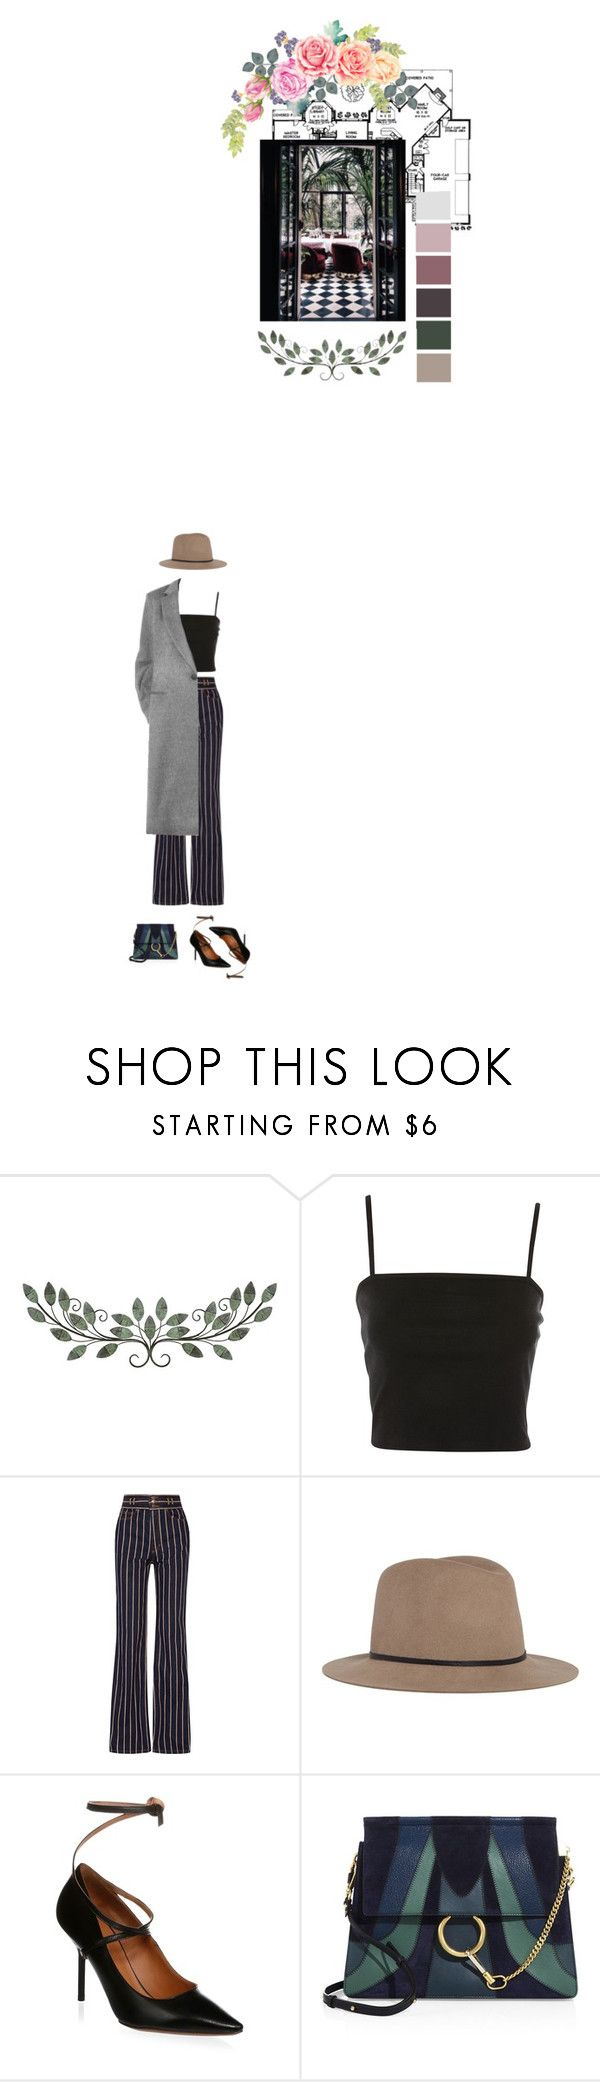 """""""Khalid – Location"""" by asminli ❤ liked on Polyvore featuring Topshop, Marc Jacobs, Janessa Leone, Vetements, Chloé and Victoria Beckham"""